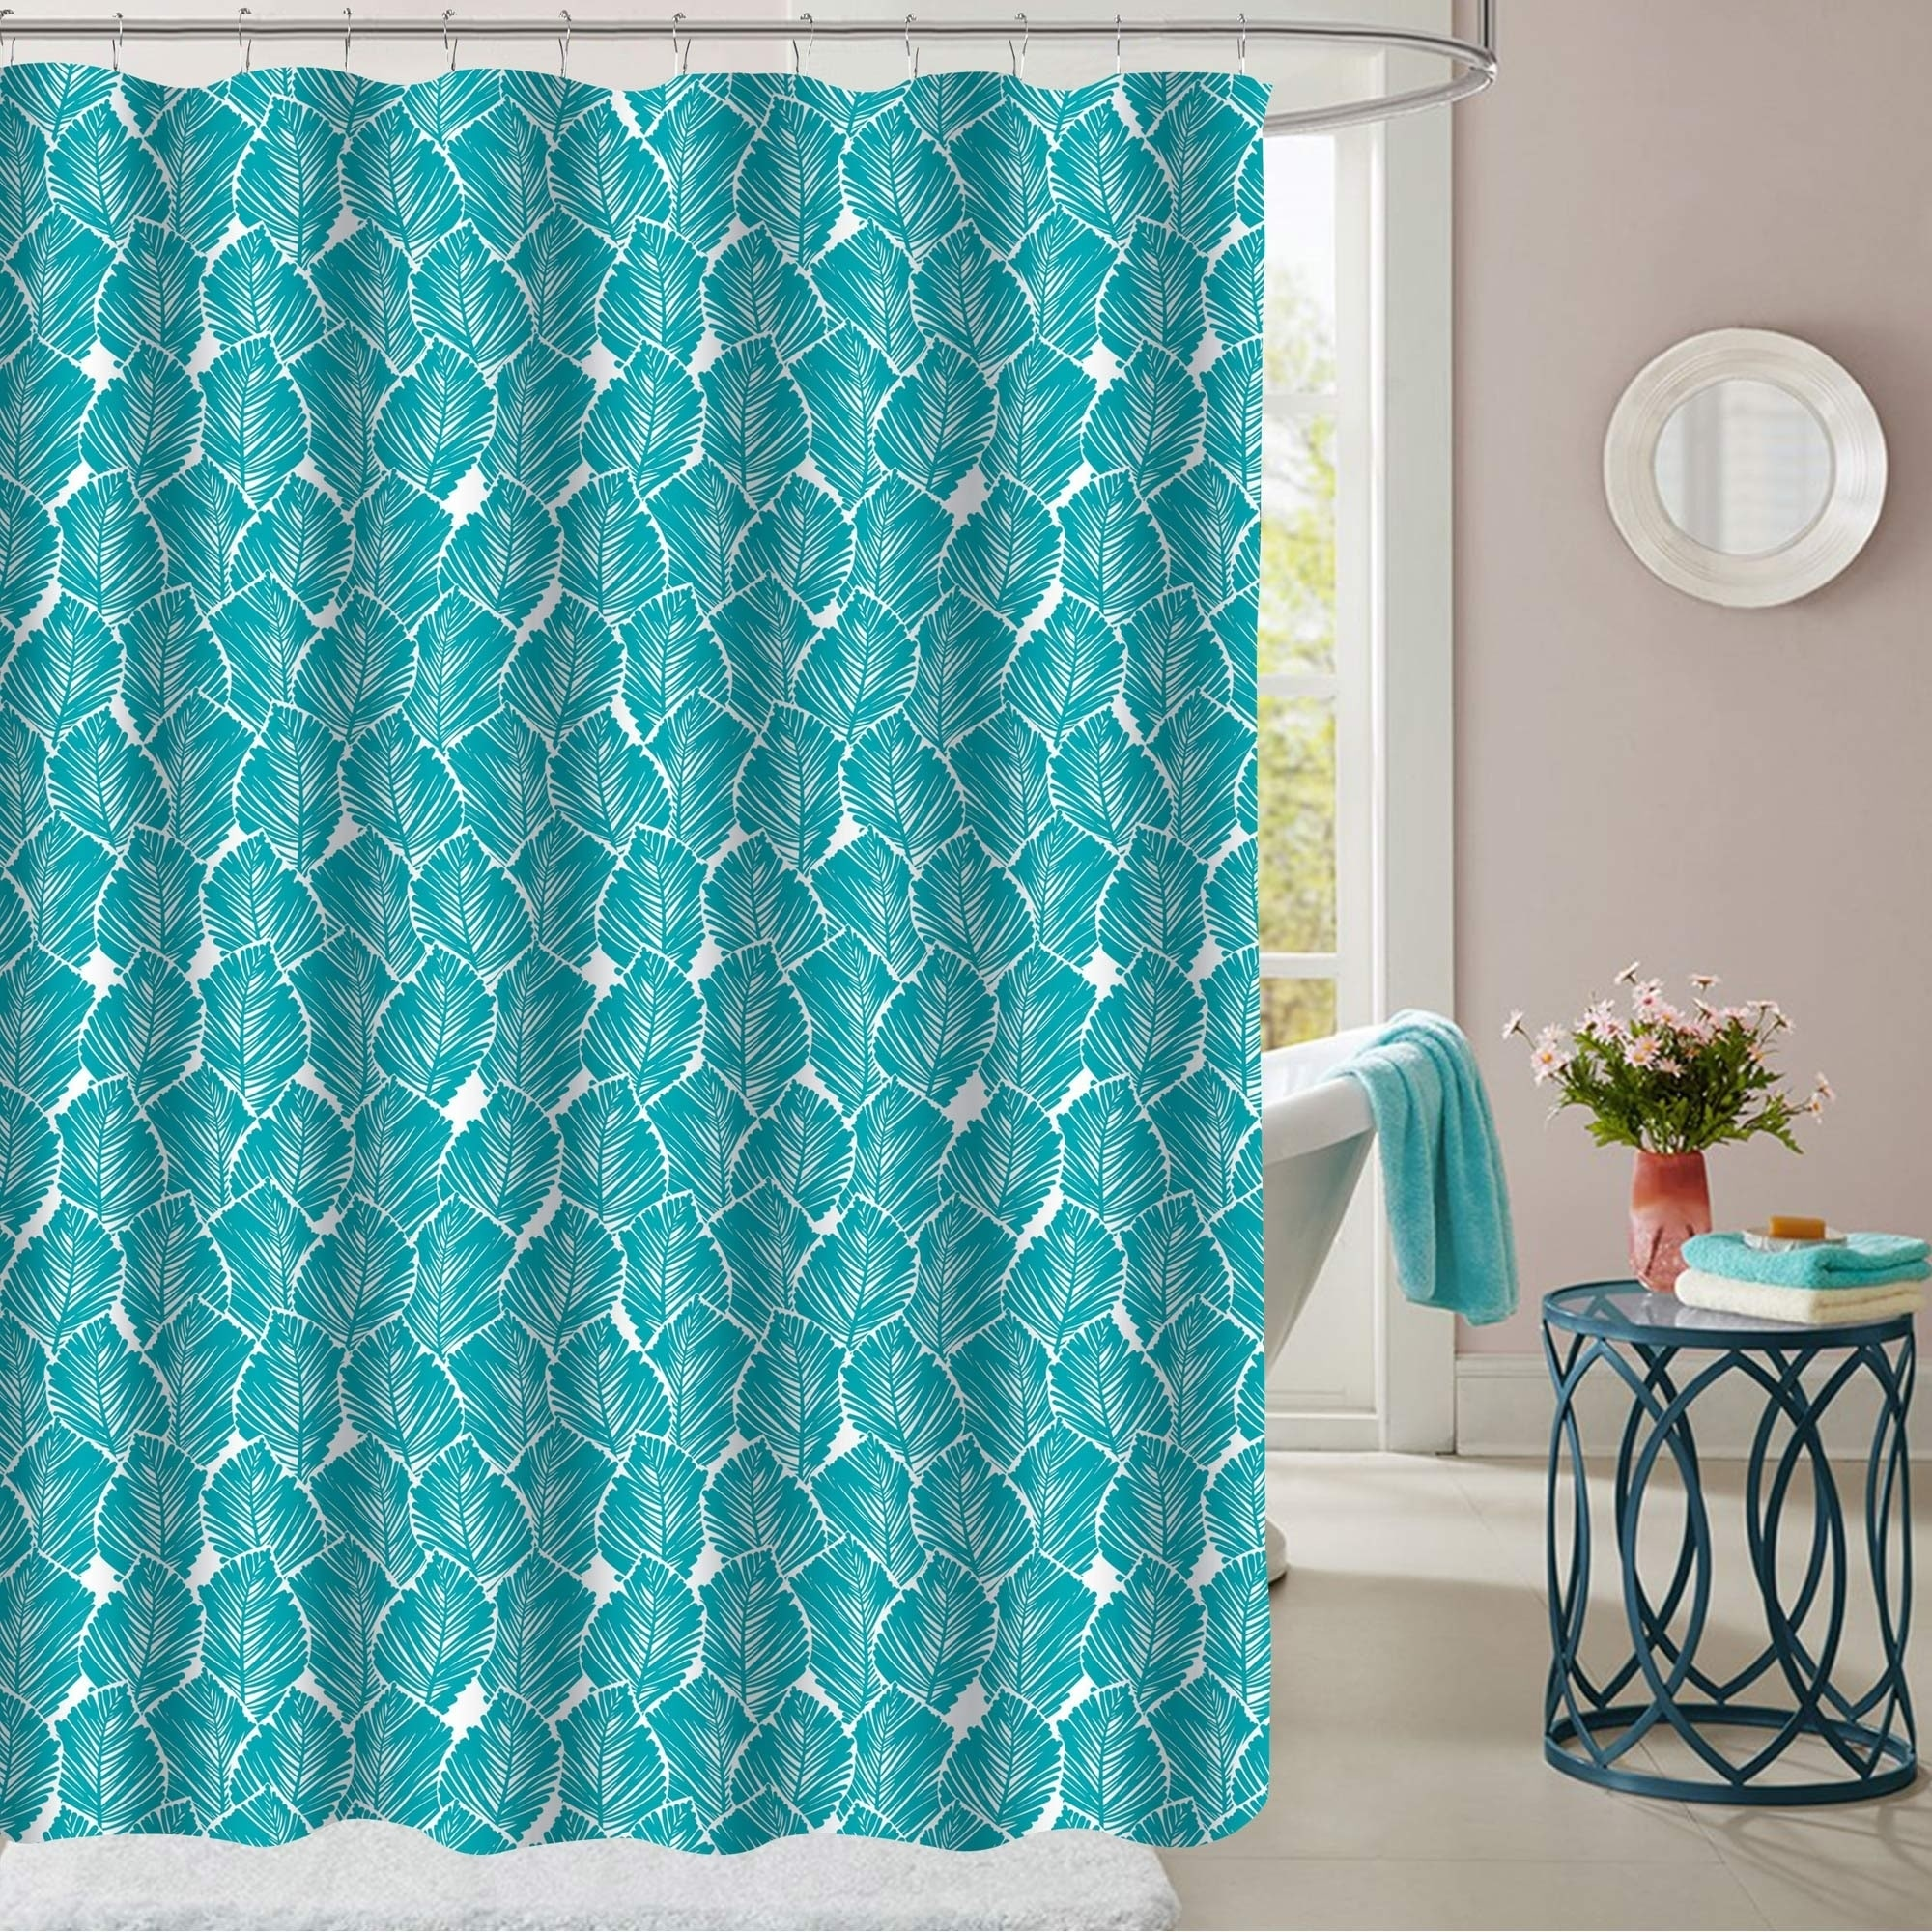 Shop Tropical Leaf Patterned Fabric Shower Curtain (70\